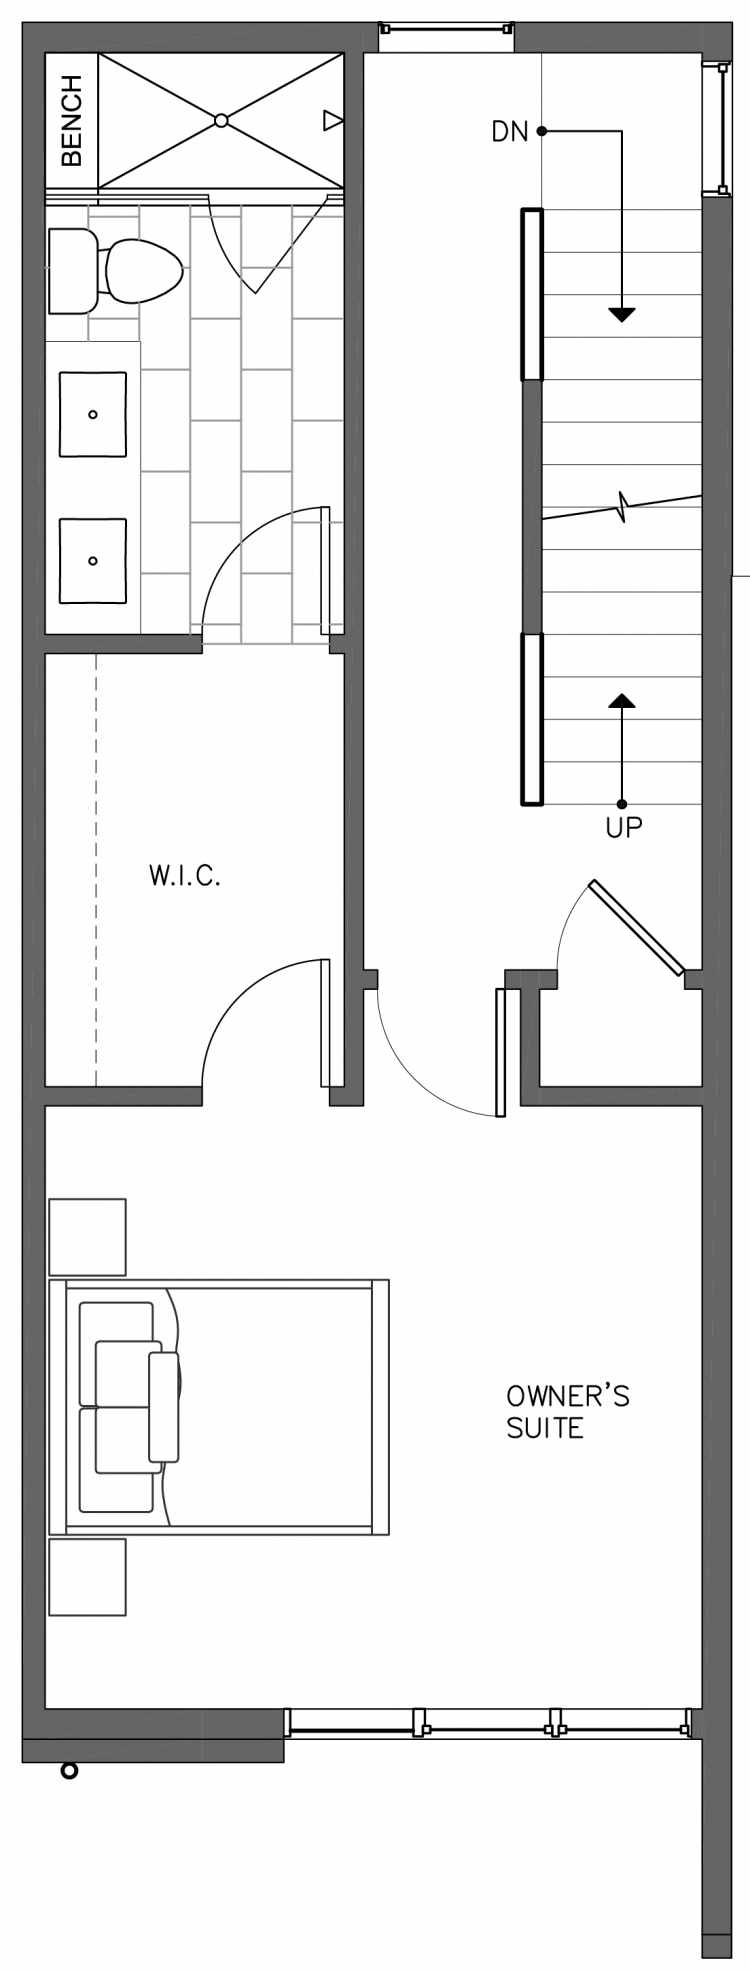 Third Floor Plan of 3236B 14th Ave W, One of the Harloe Townhomes in North Queen Anne by Isola Homes